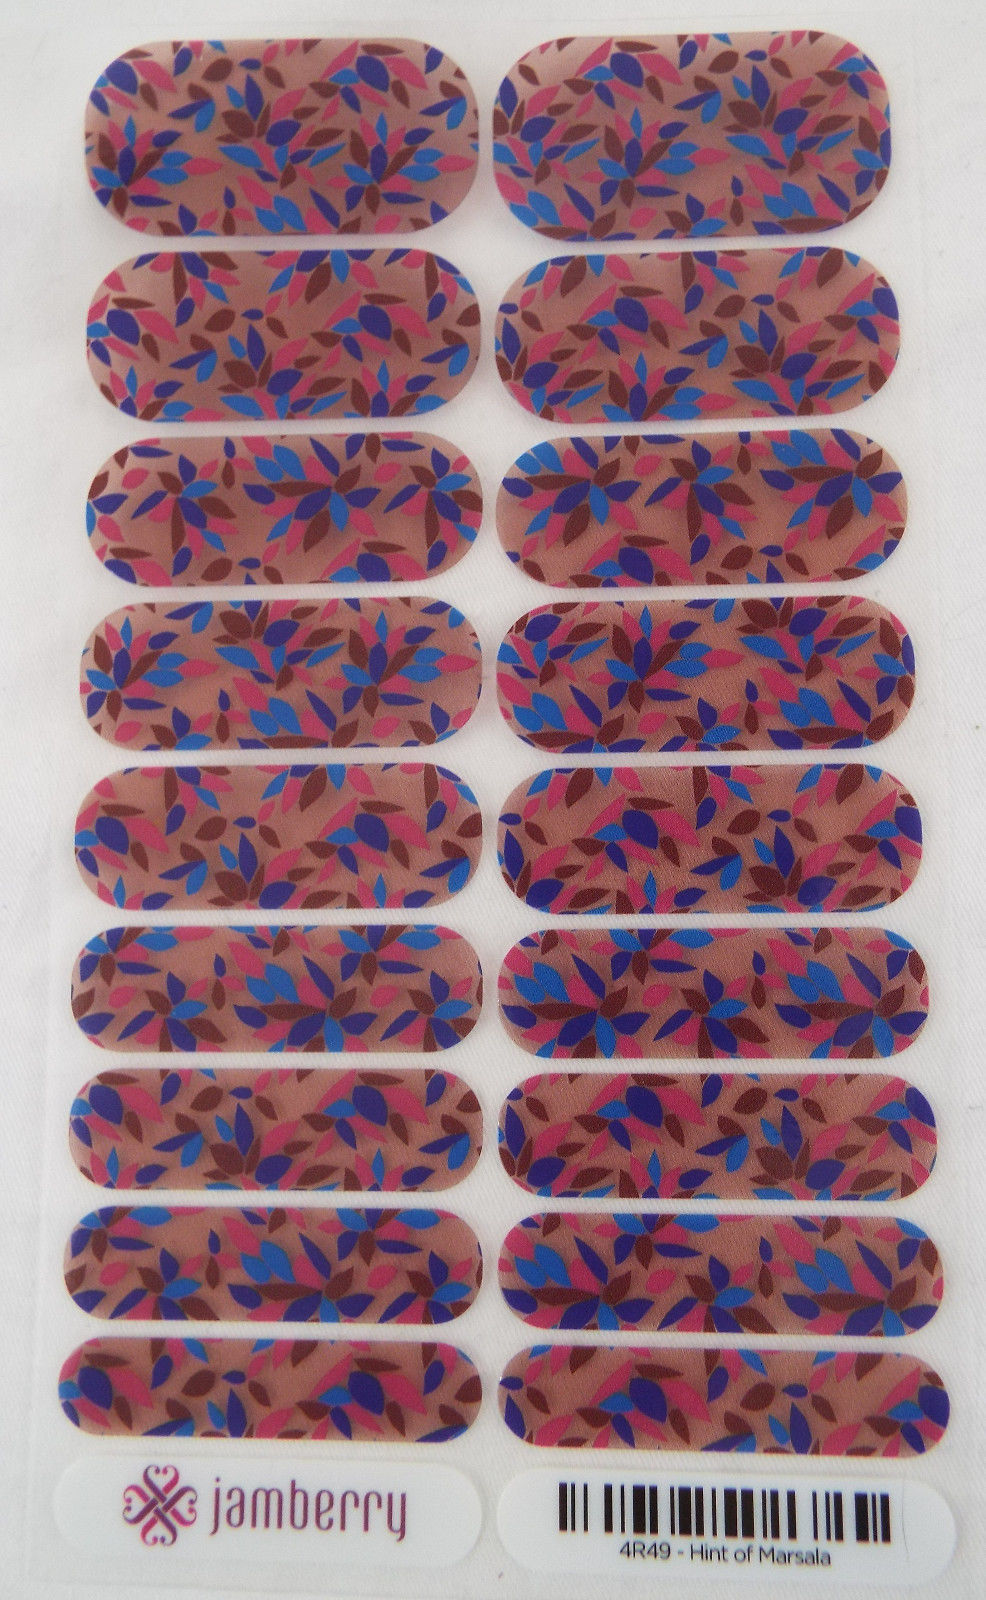 Primary image for Jamberry Hint of Marsala Nail Wrap ( Full Sheet ) 4R49  New in Packaging